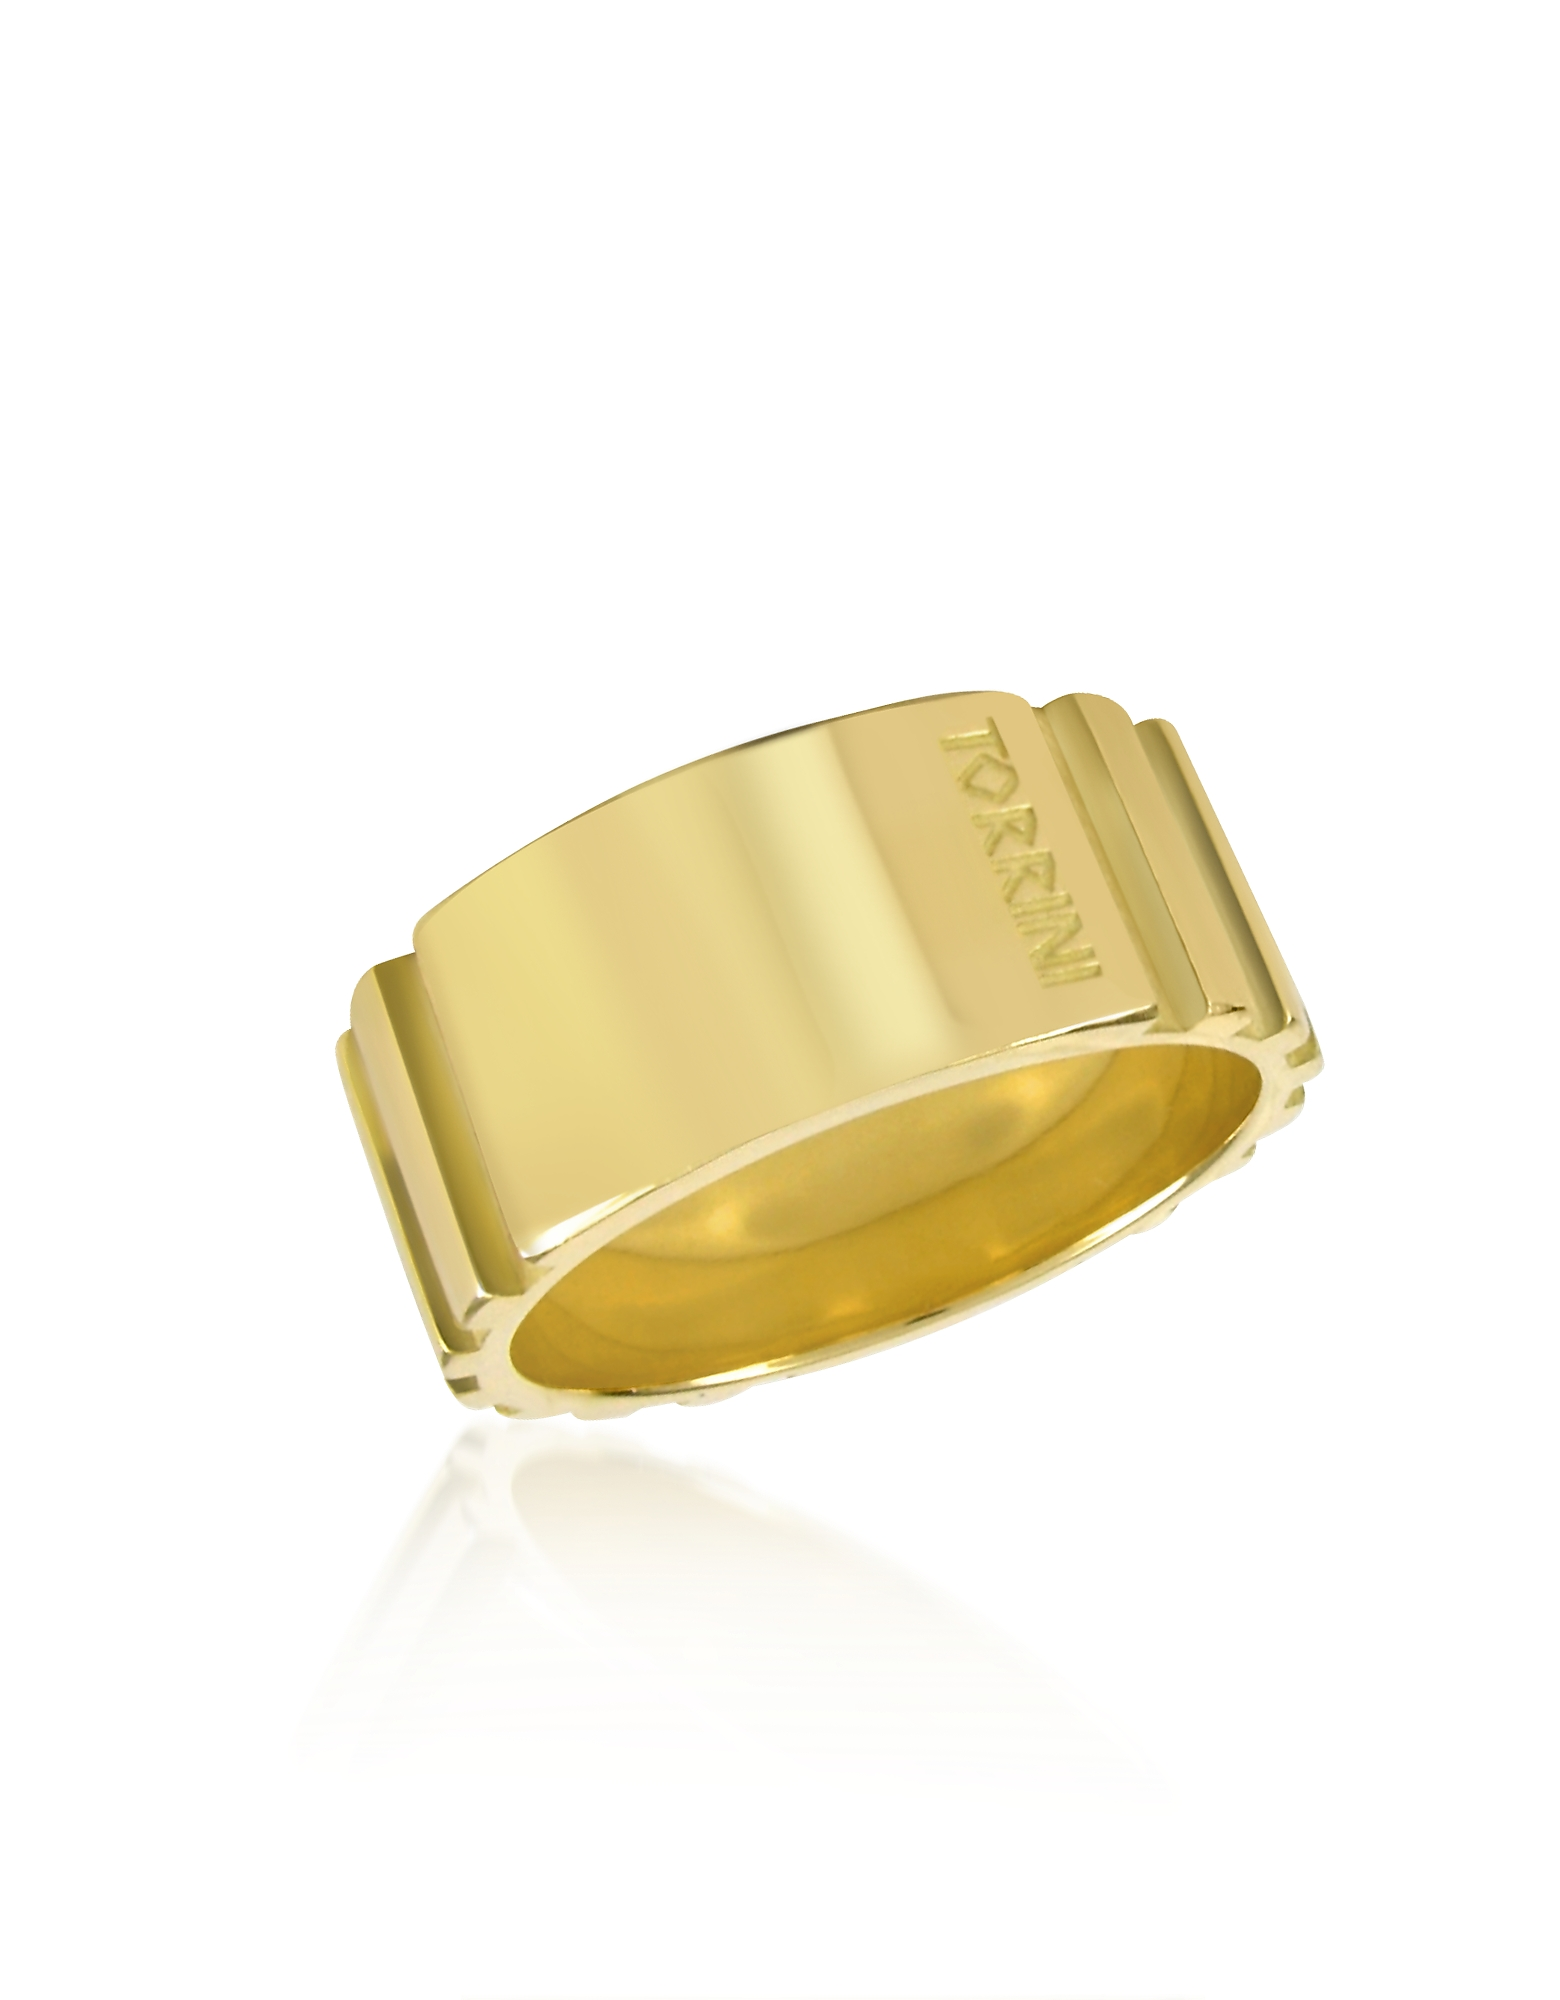 Torrini Men's Rings, Stripes - 18k Yellow Gold Tall Band Ring